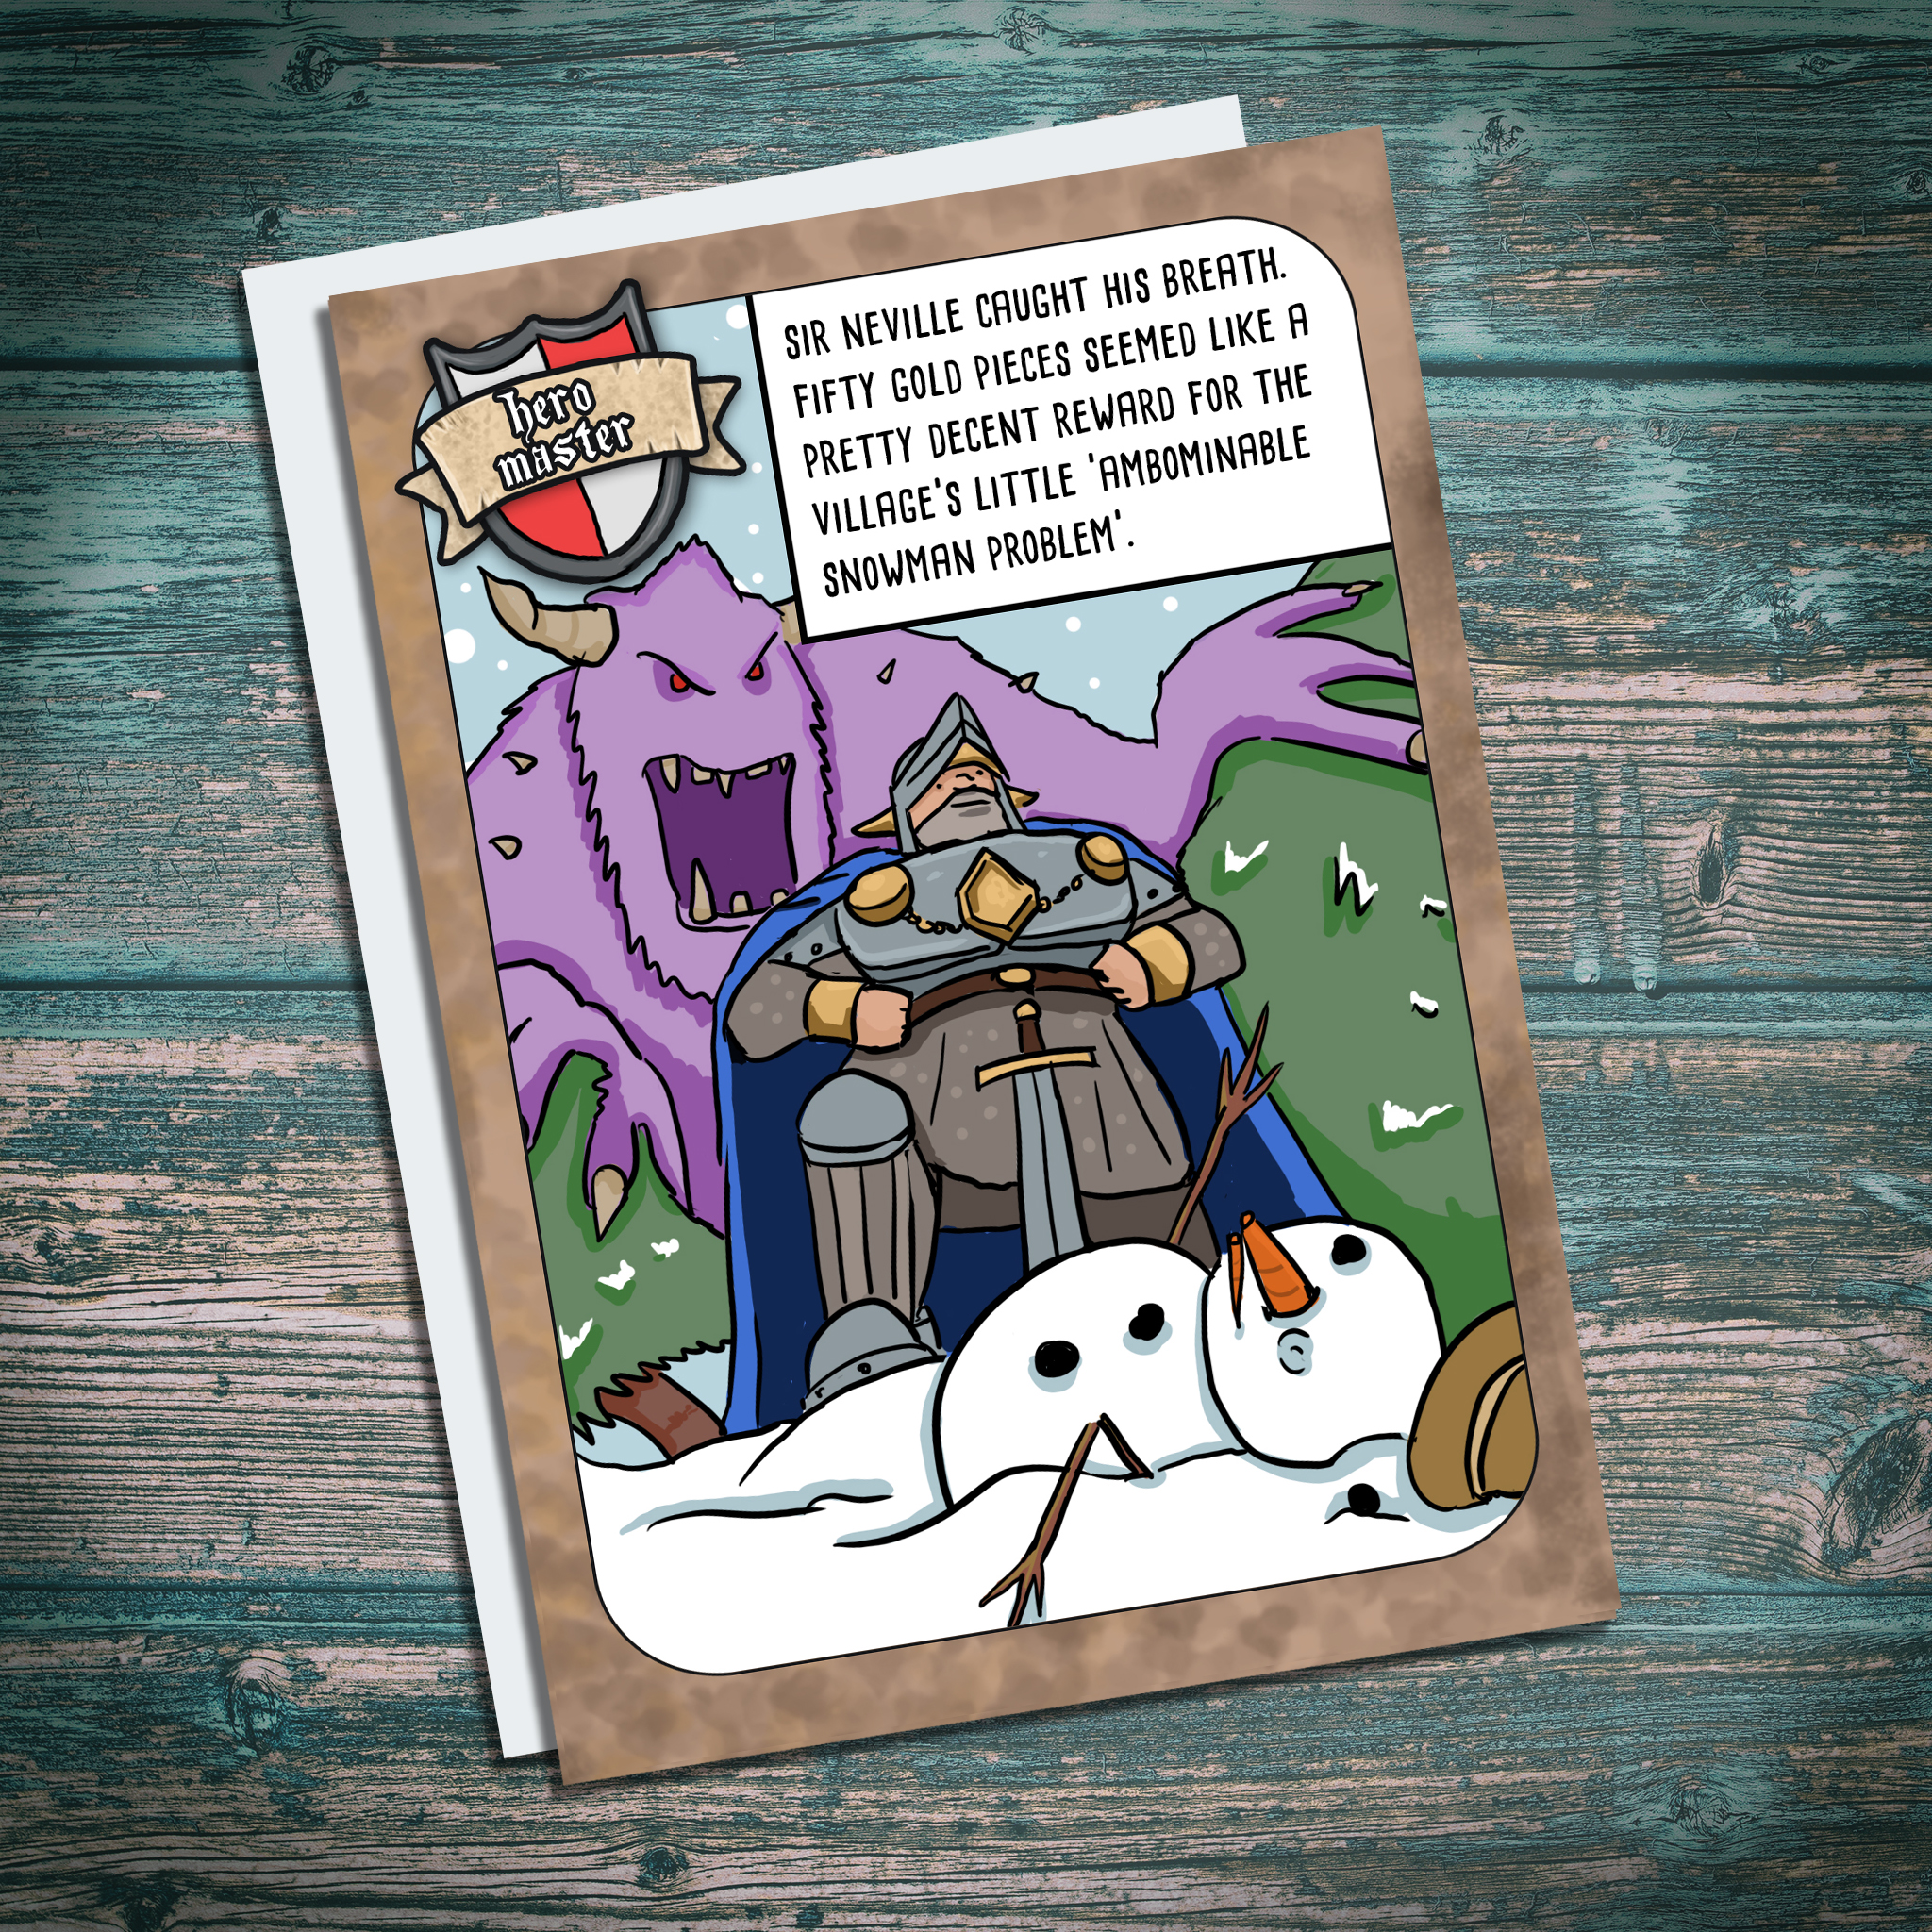 funny christmas card for geeks, RPG fans, fantasy geek christmas card with yeti